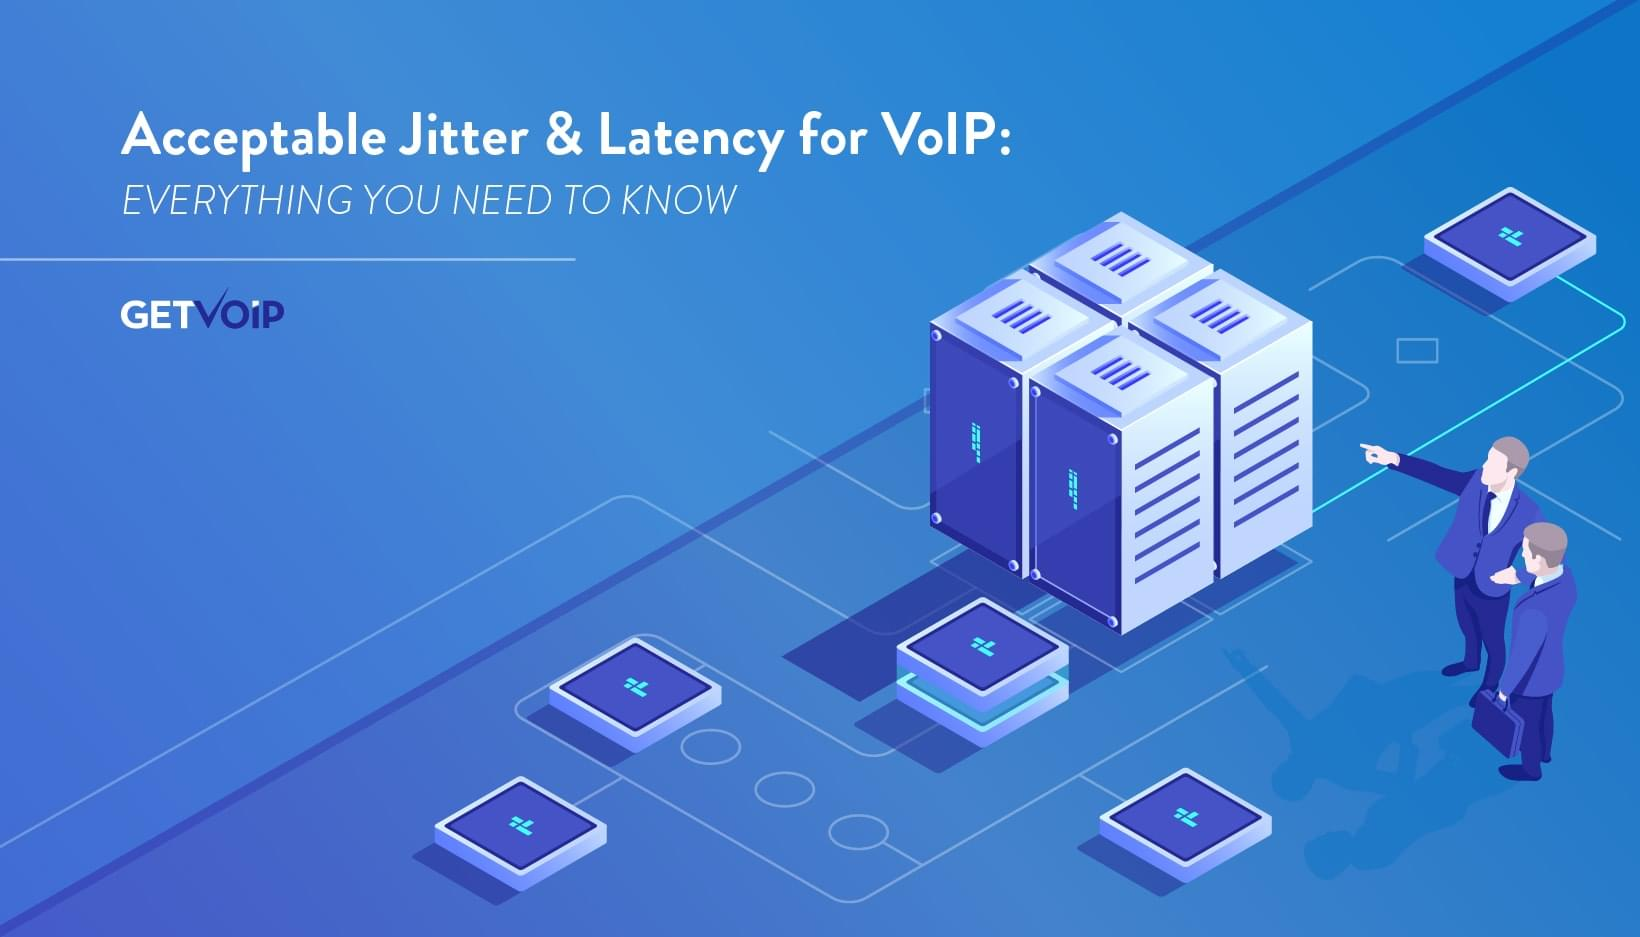 Acceptable Jitter & Latency for VoIP: Everything You Need to